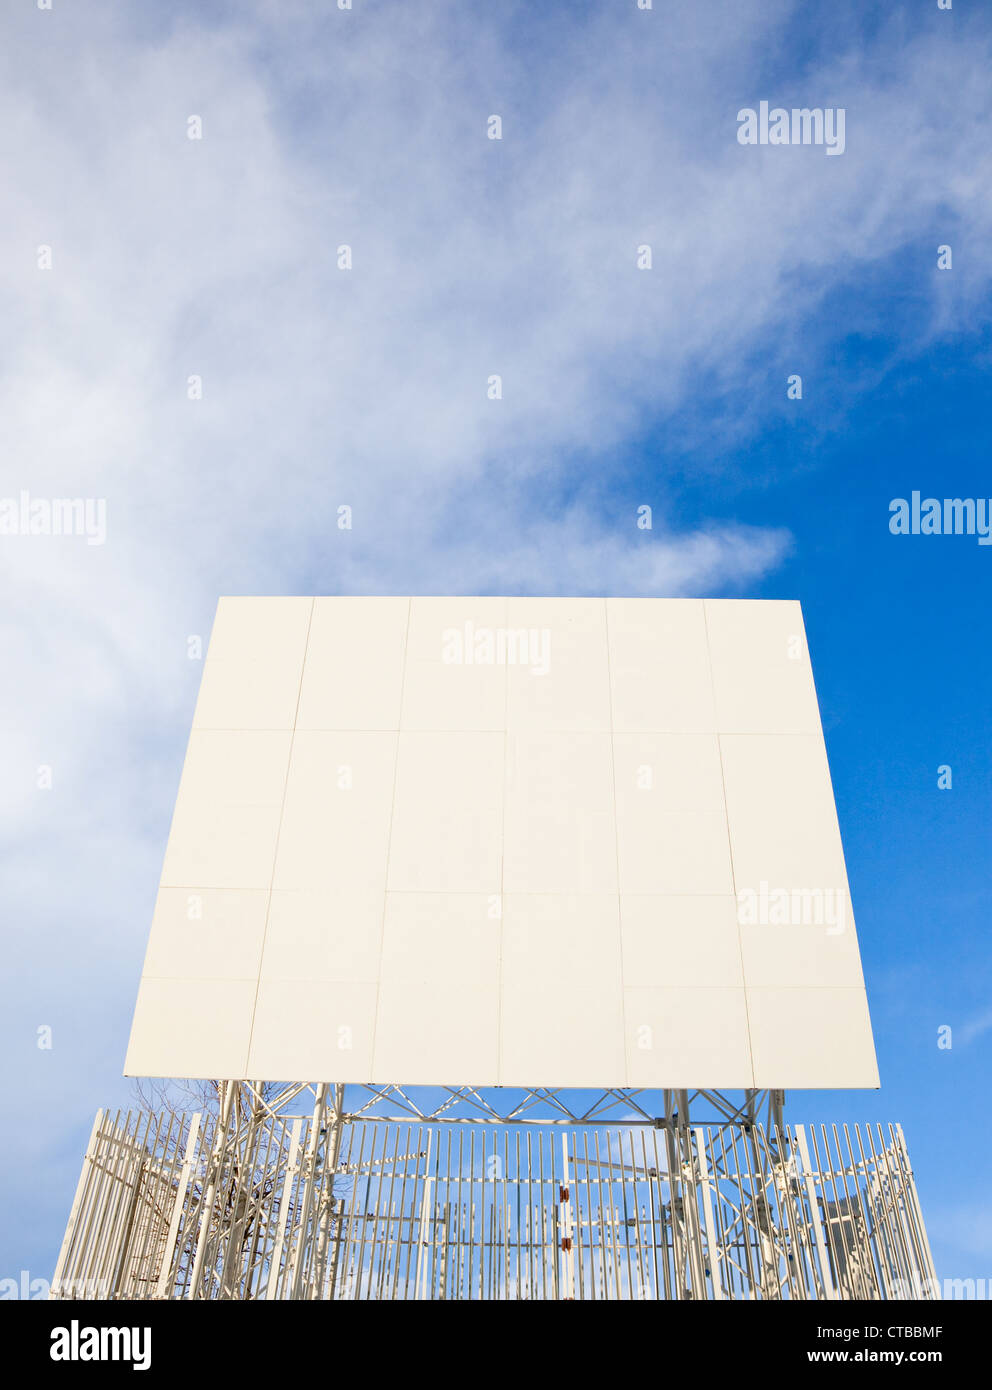 A white passive TV repeater over blue sky - Stock Image